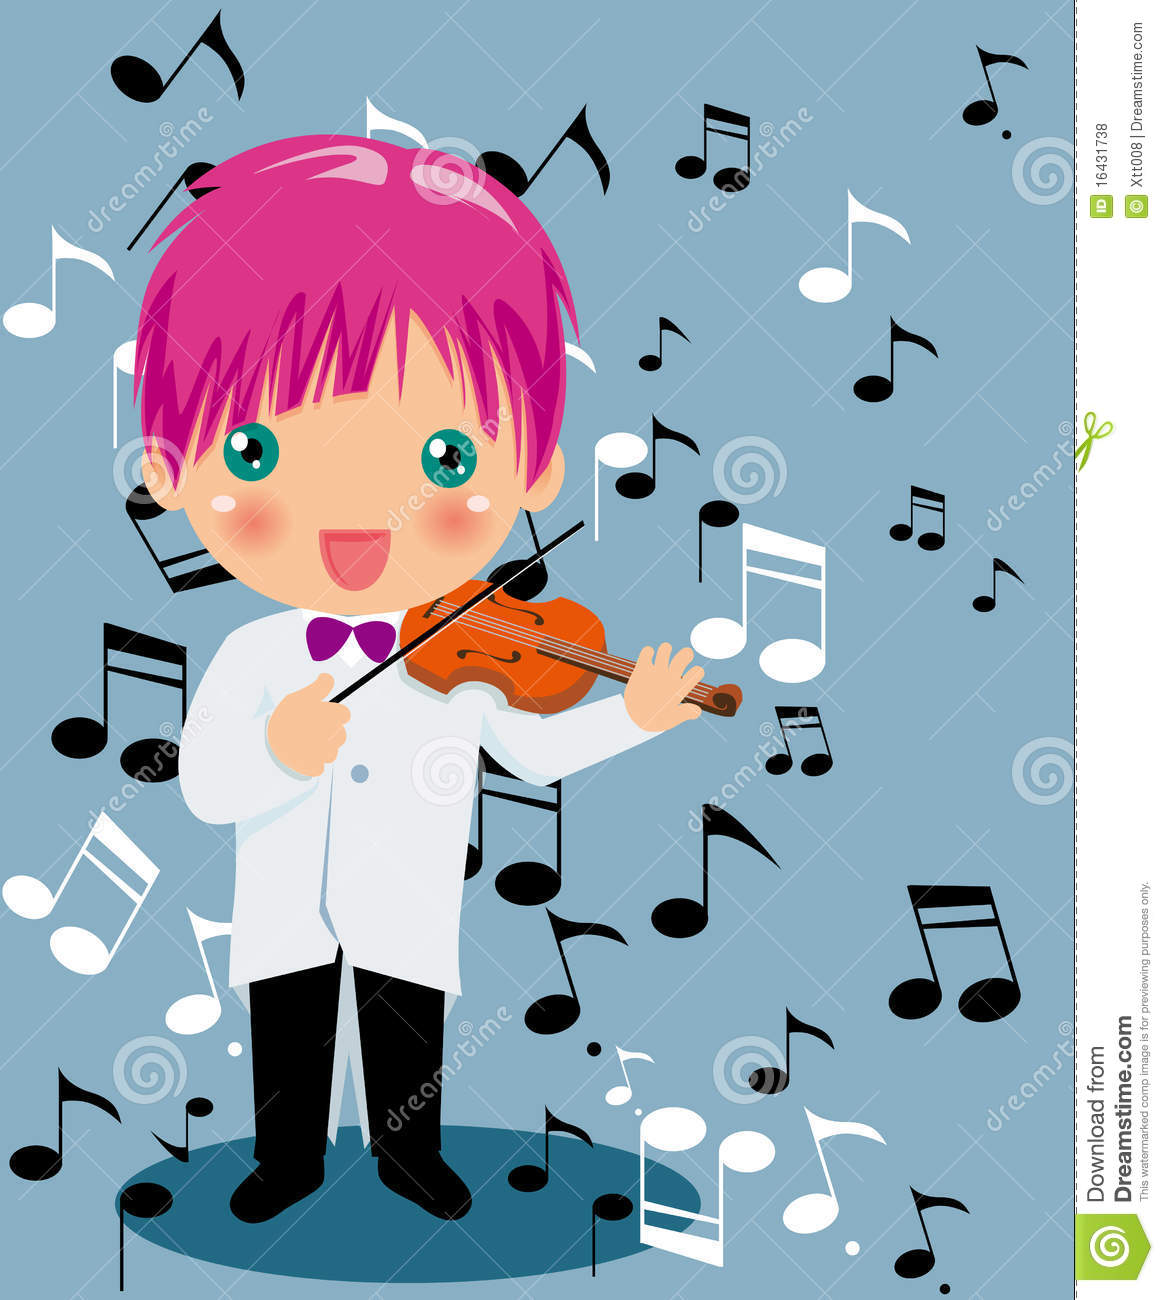 Playing Violin Boy Royalty Free Stock Photos.